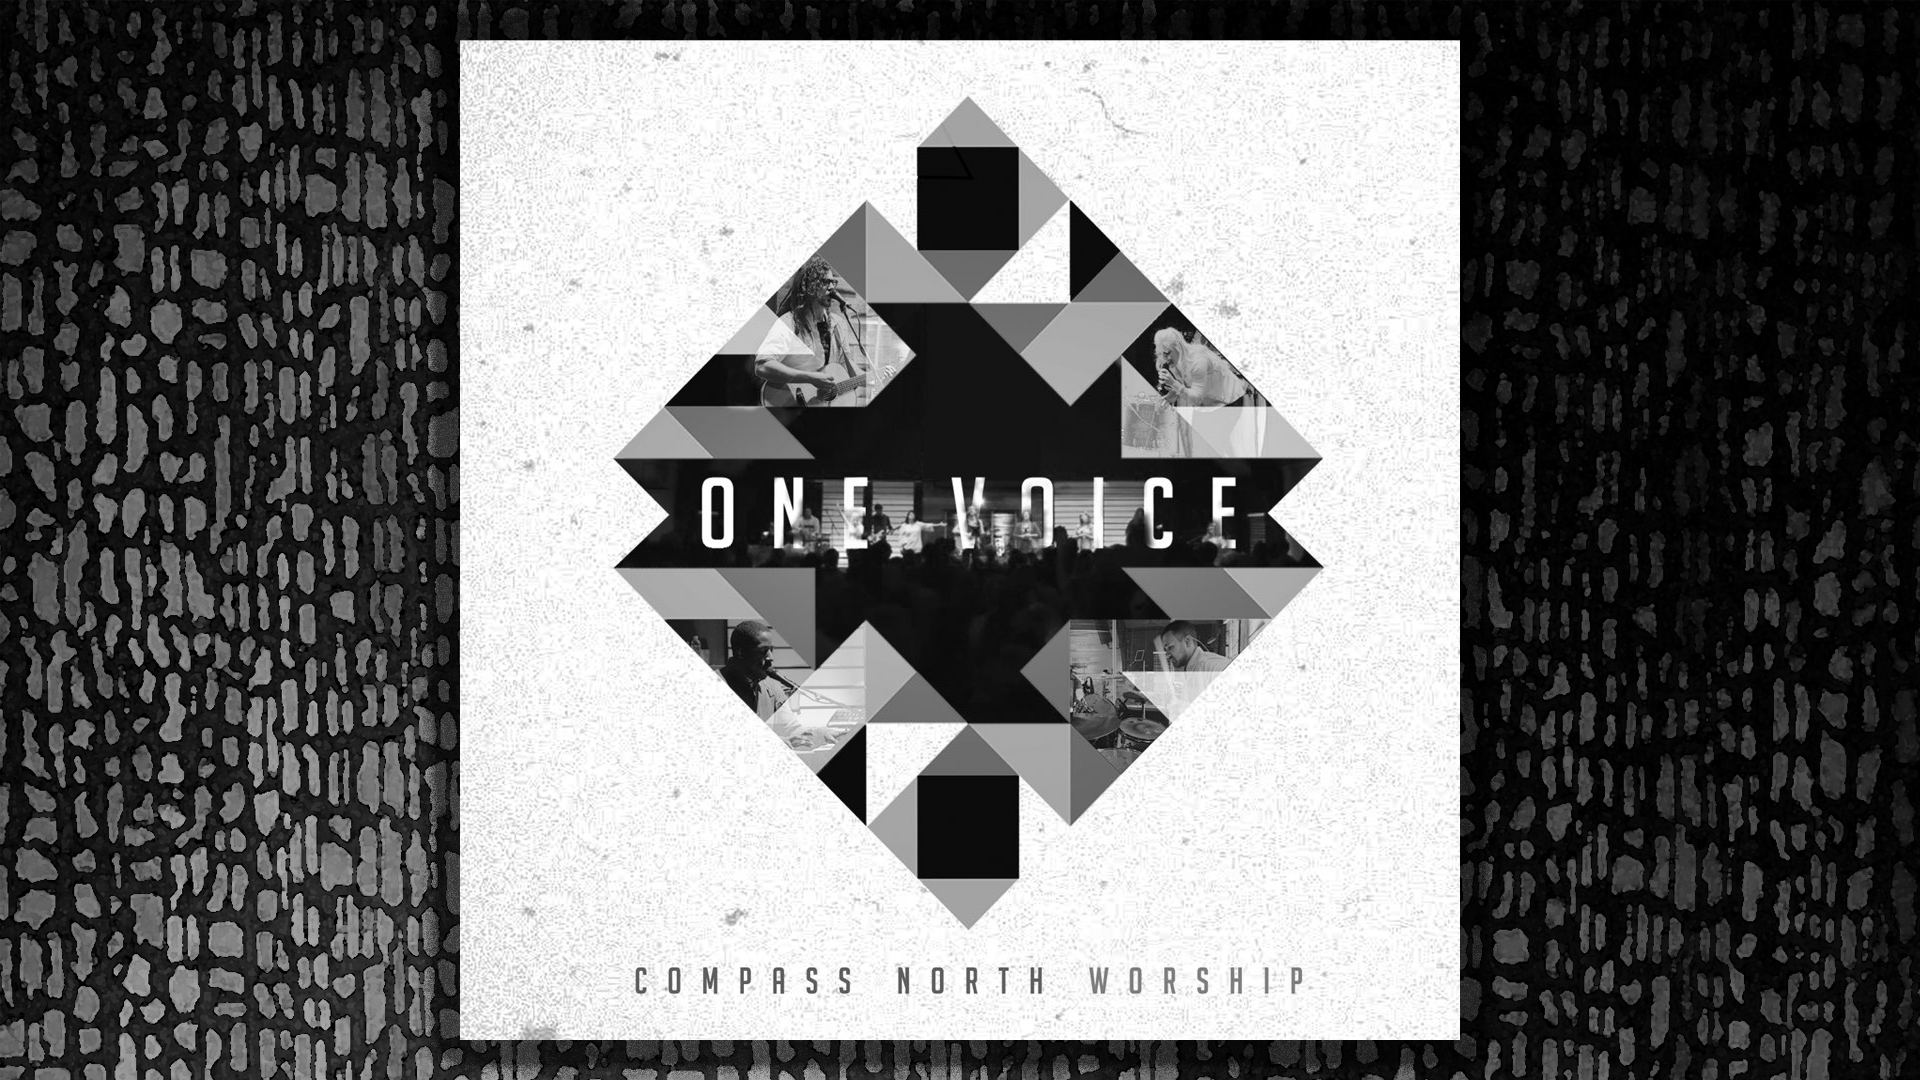 One Voice, Compass North Worship